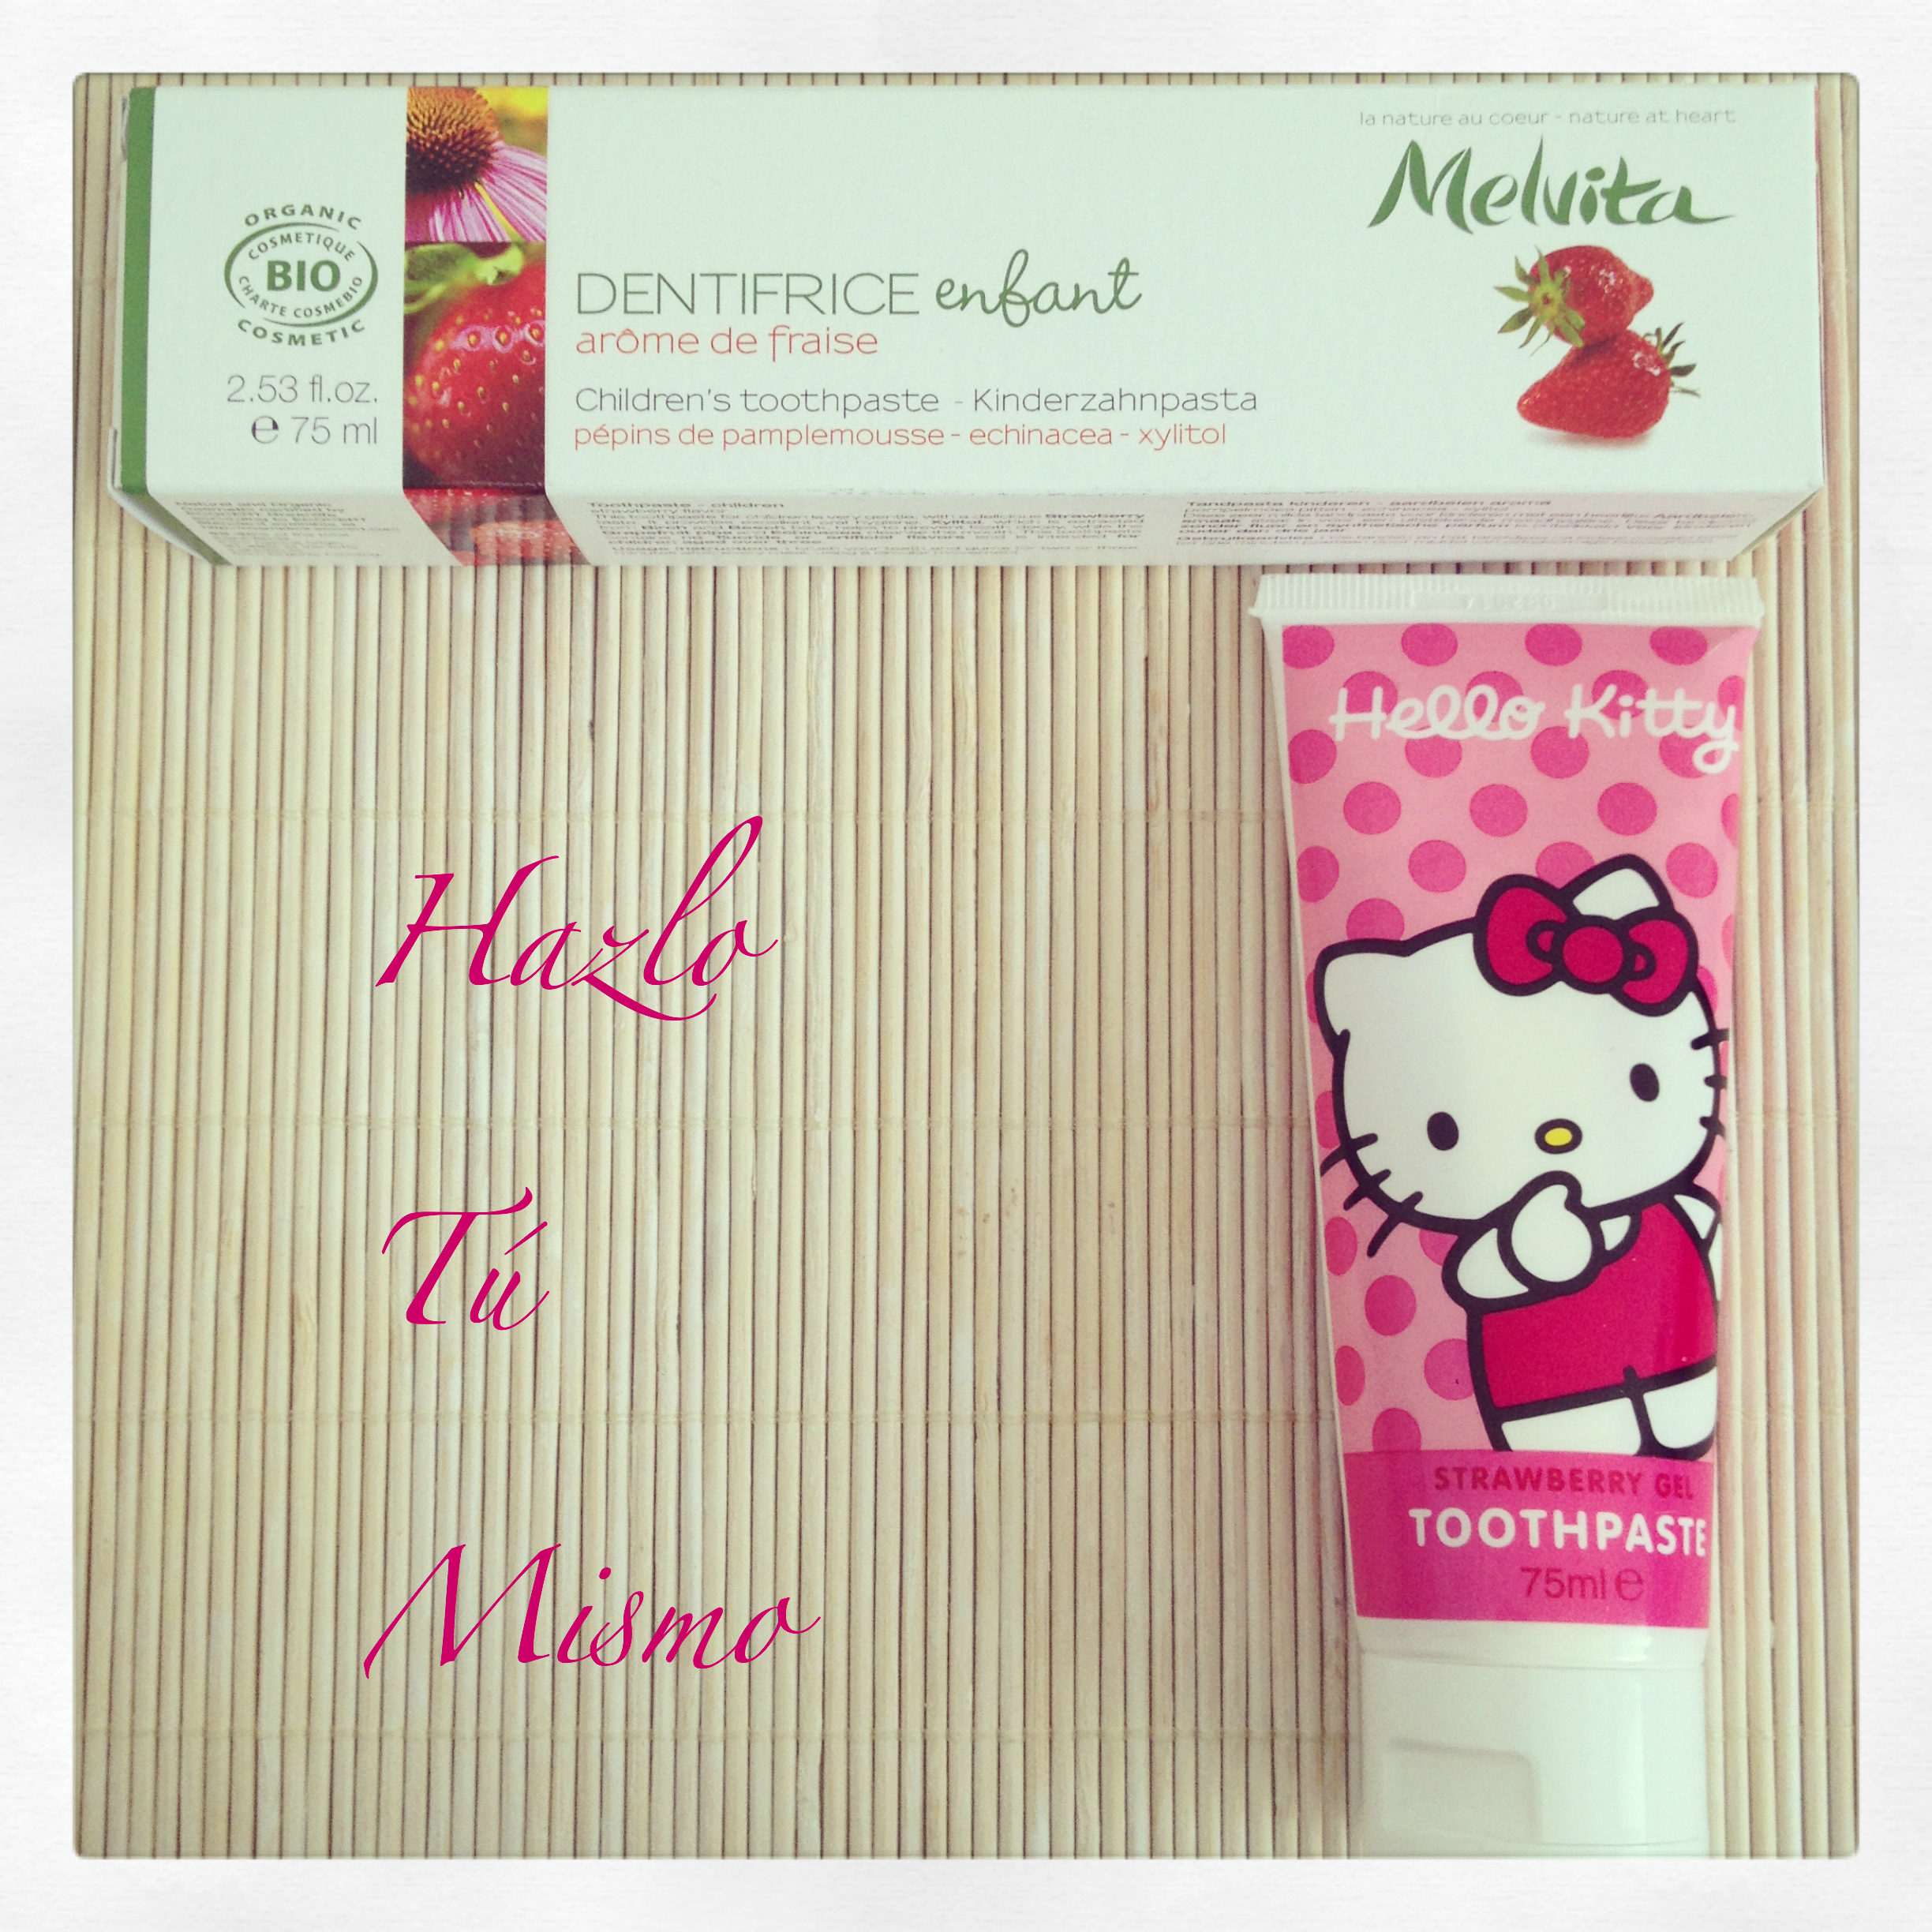 DIY Do It Yourself, Hazlo Tú Mismo dentífrico orgánico de Hello Kitty